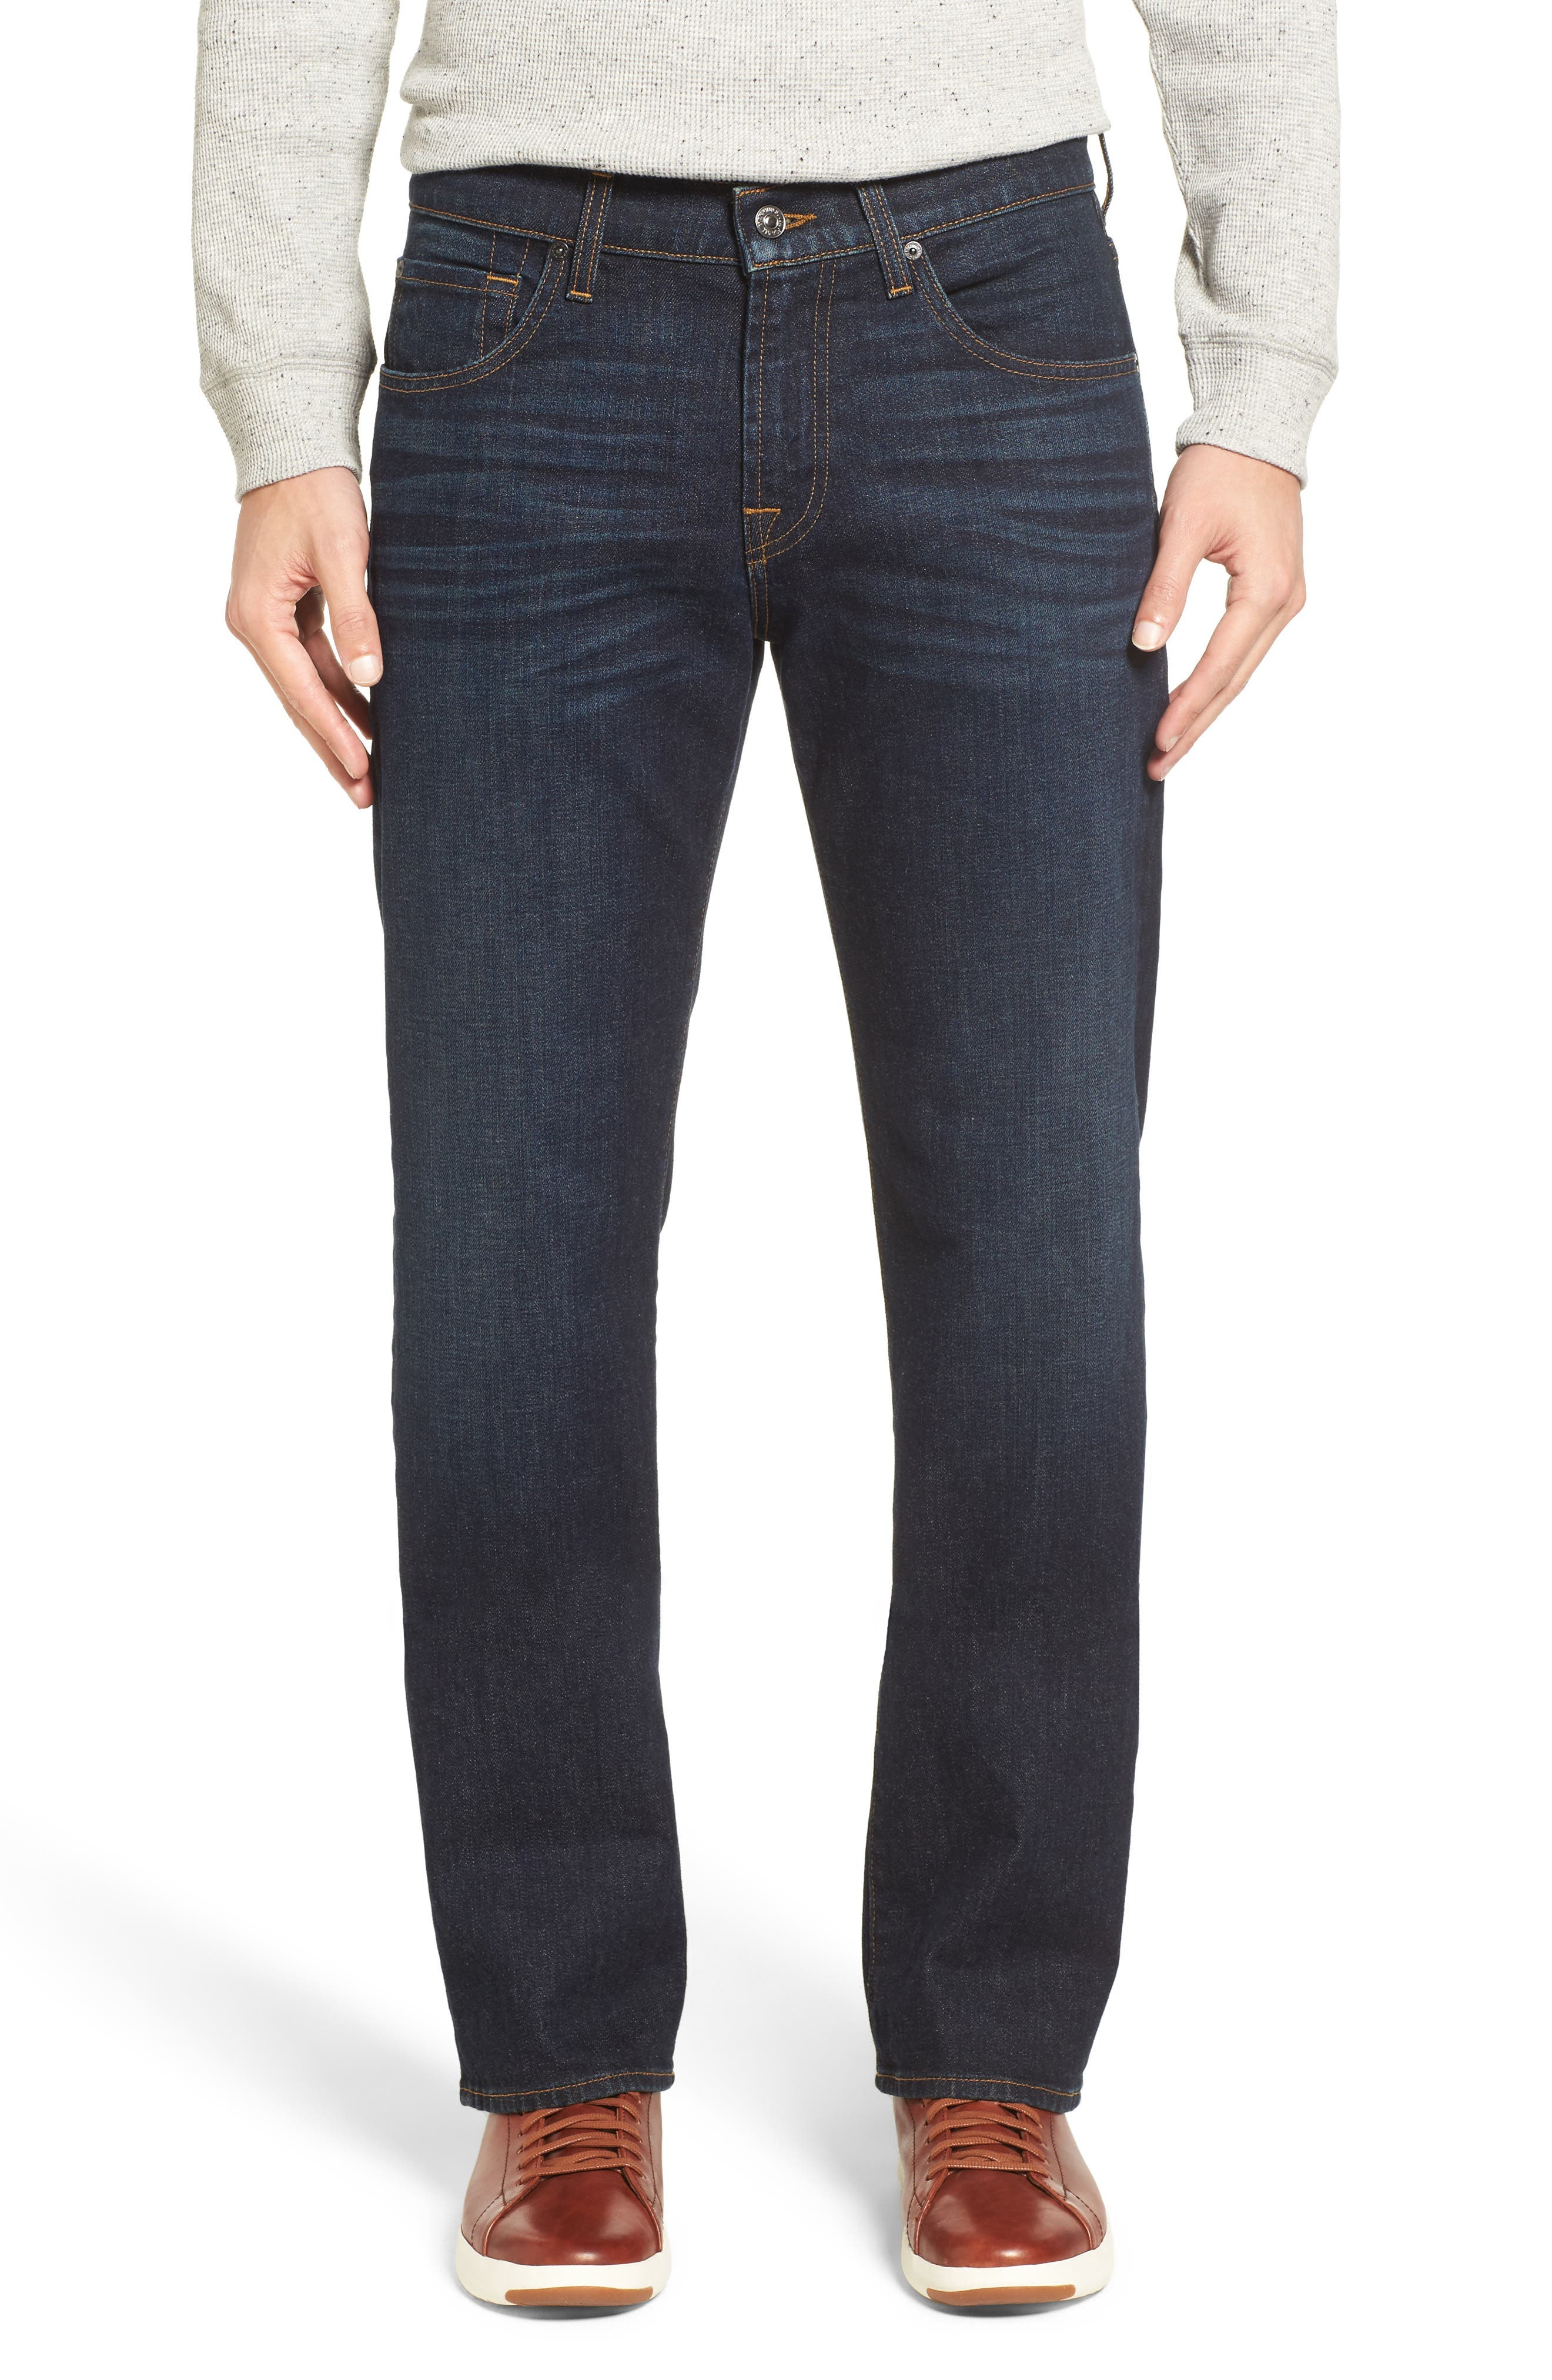 Austyn Relaxed Fit Jeans,                         Main,                         color, Pike